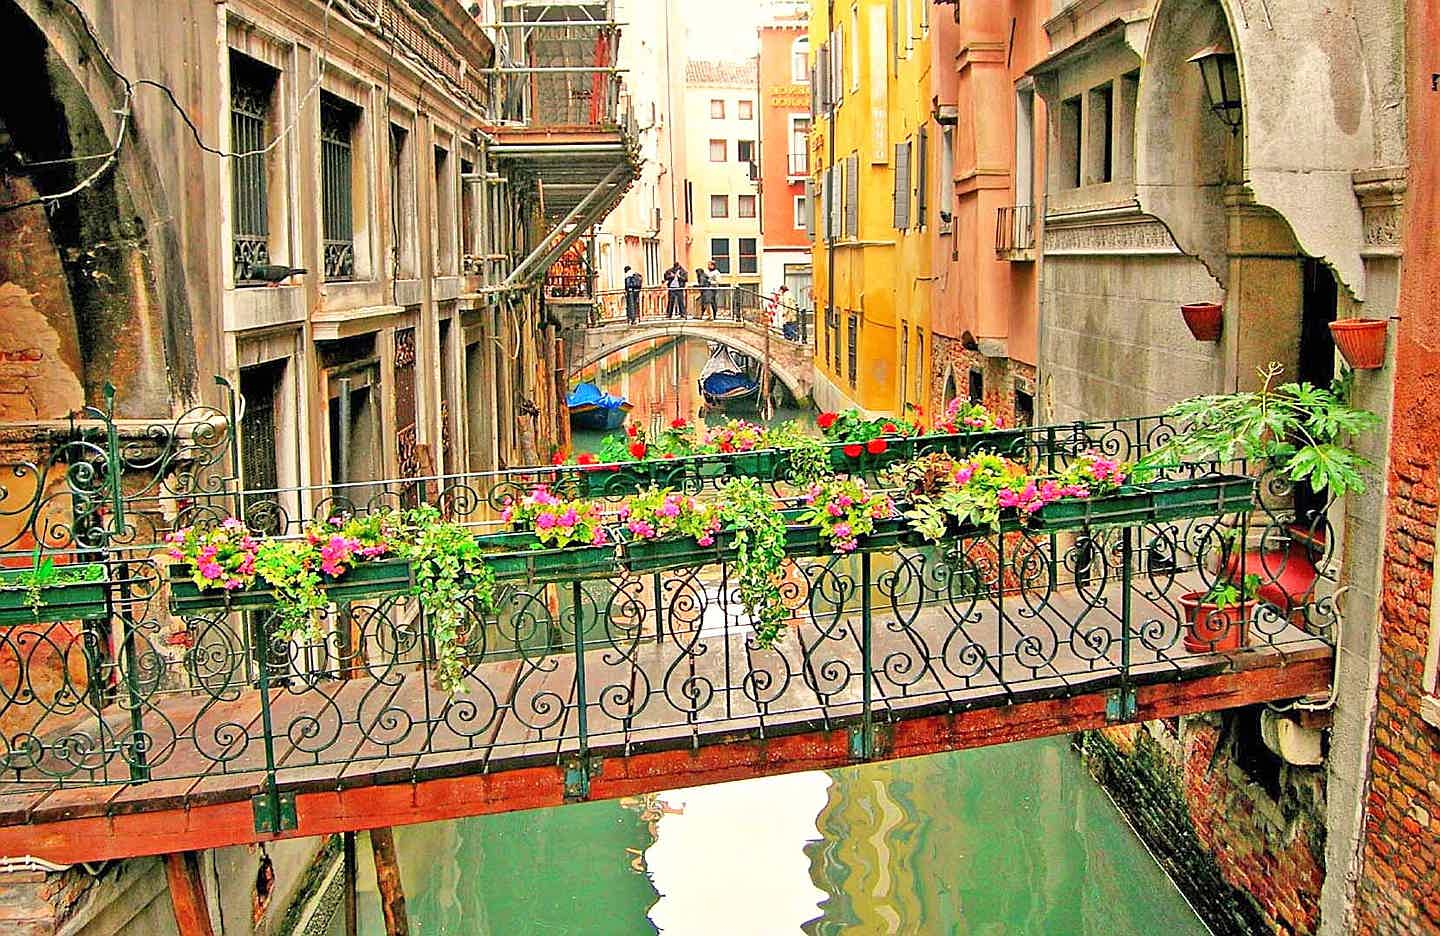 Venedig - venice-canal-transition-bridge-flowers.jpg